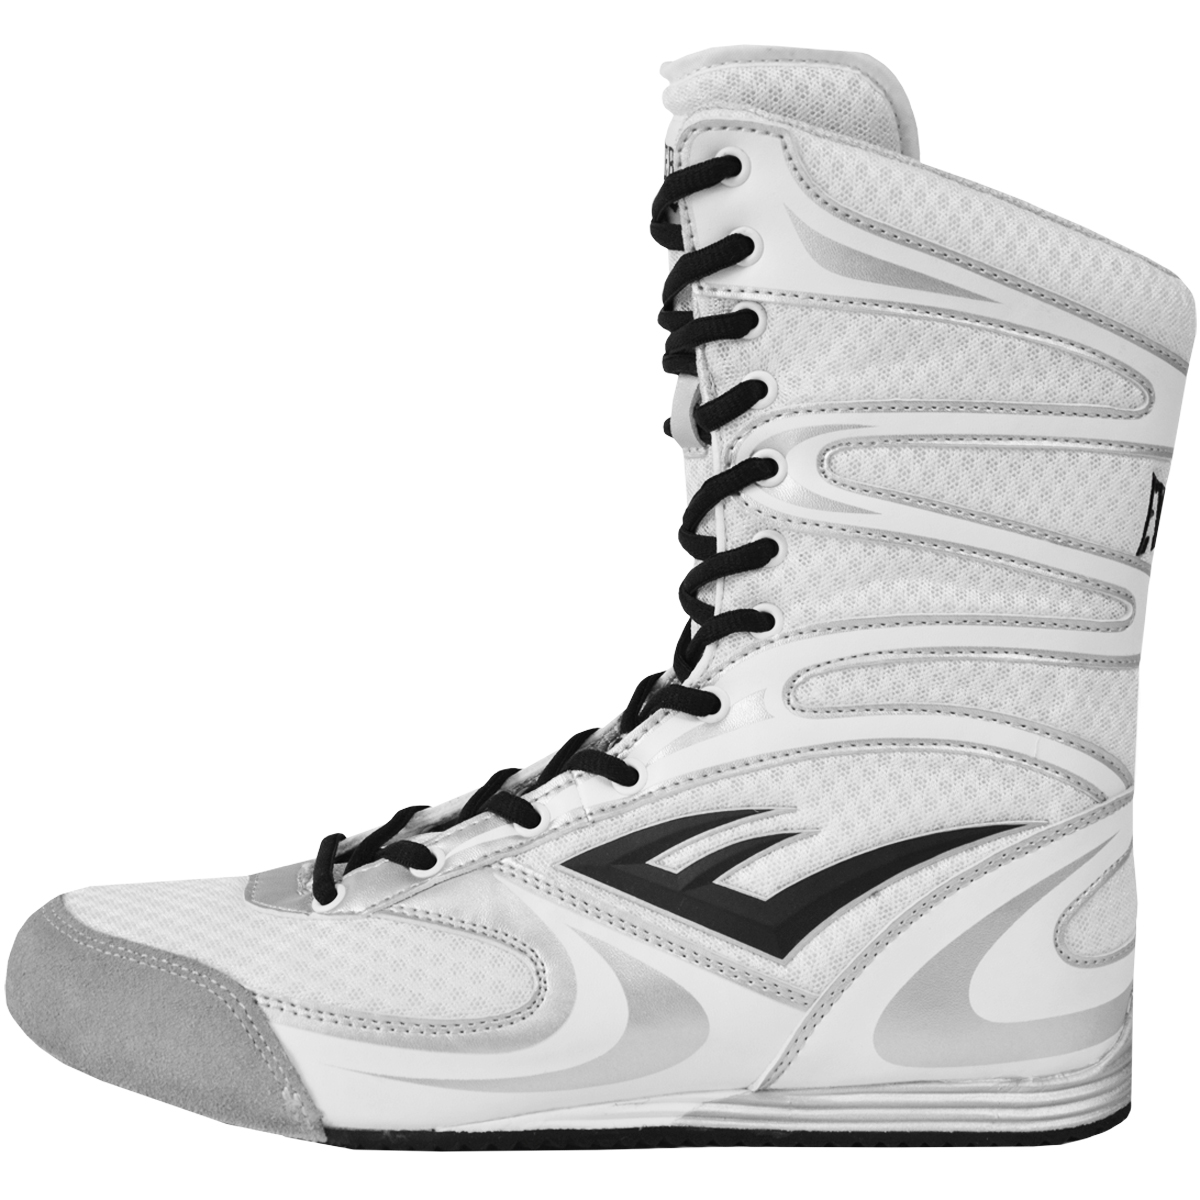 Everlast Contender High Top Boxing Shoes White Boots